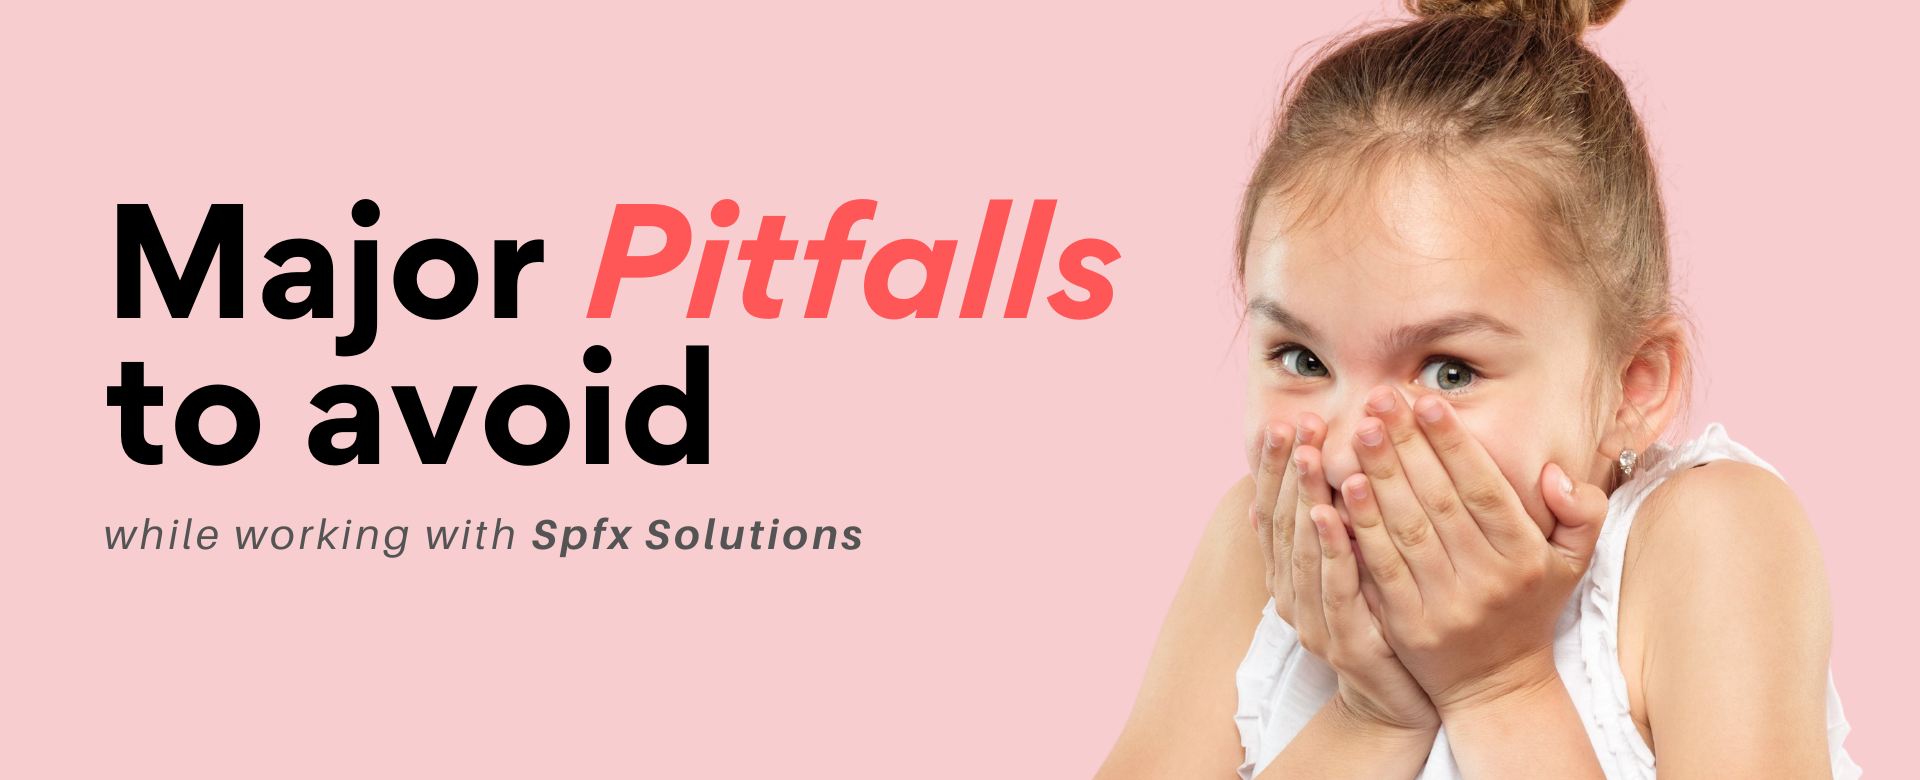 10 Pitfalls to avoid while working with CSS in Spfx Solutions with text